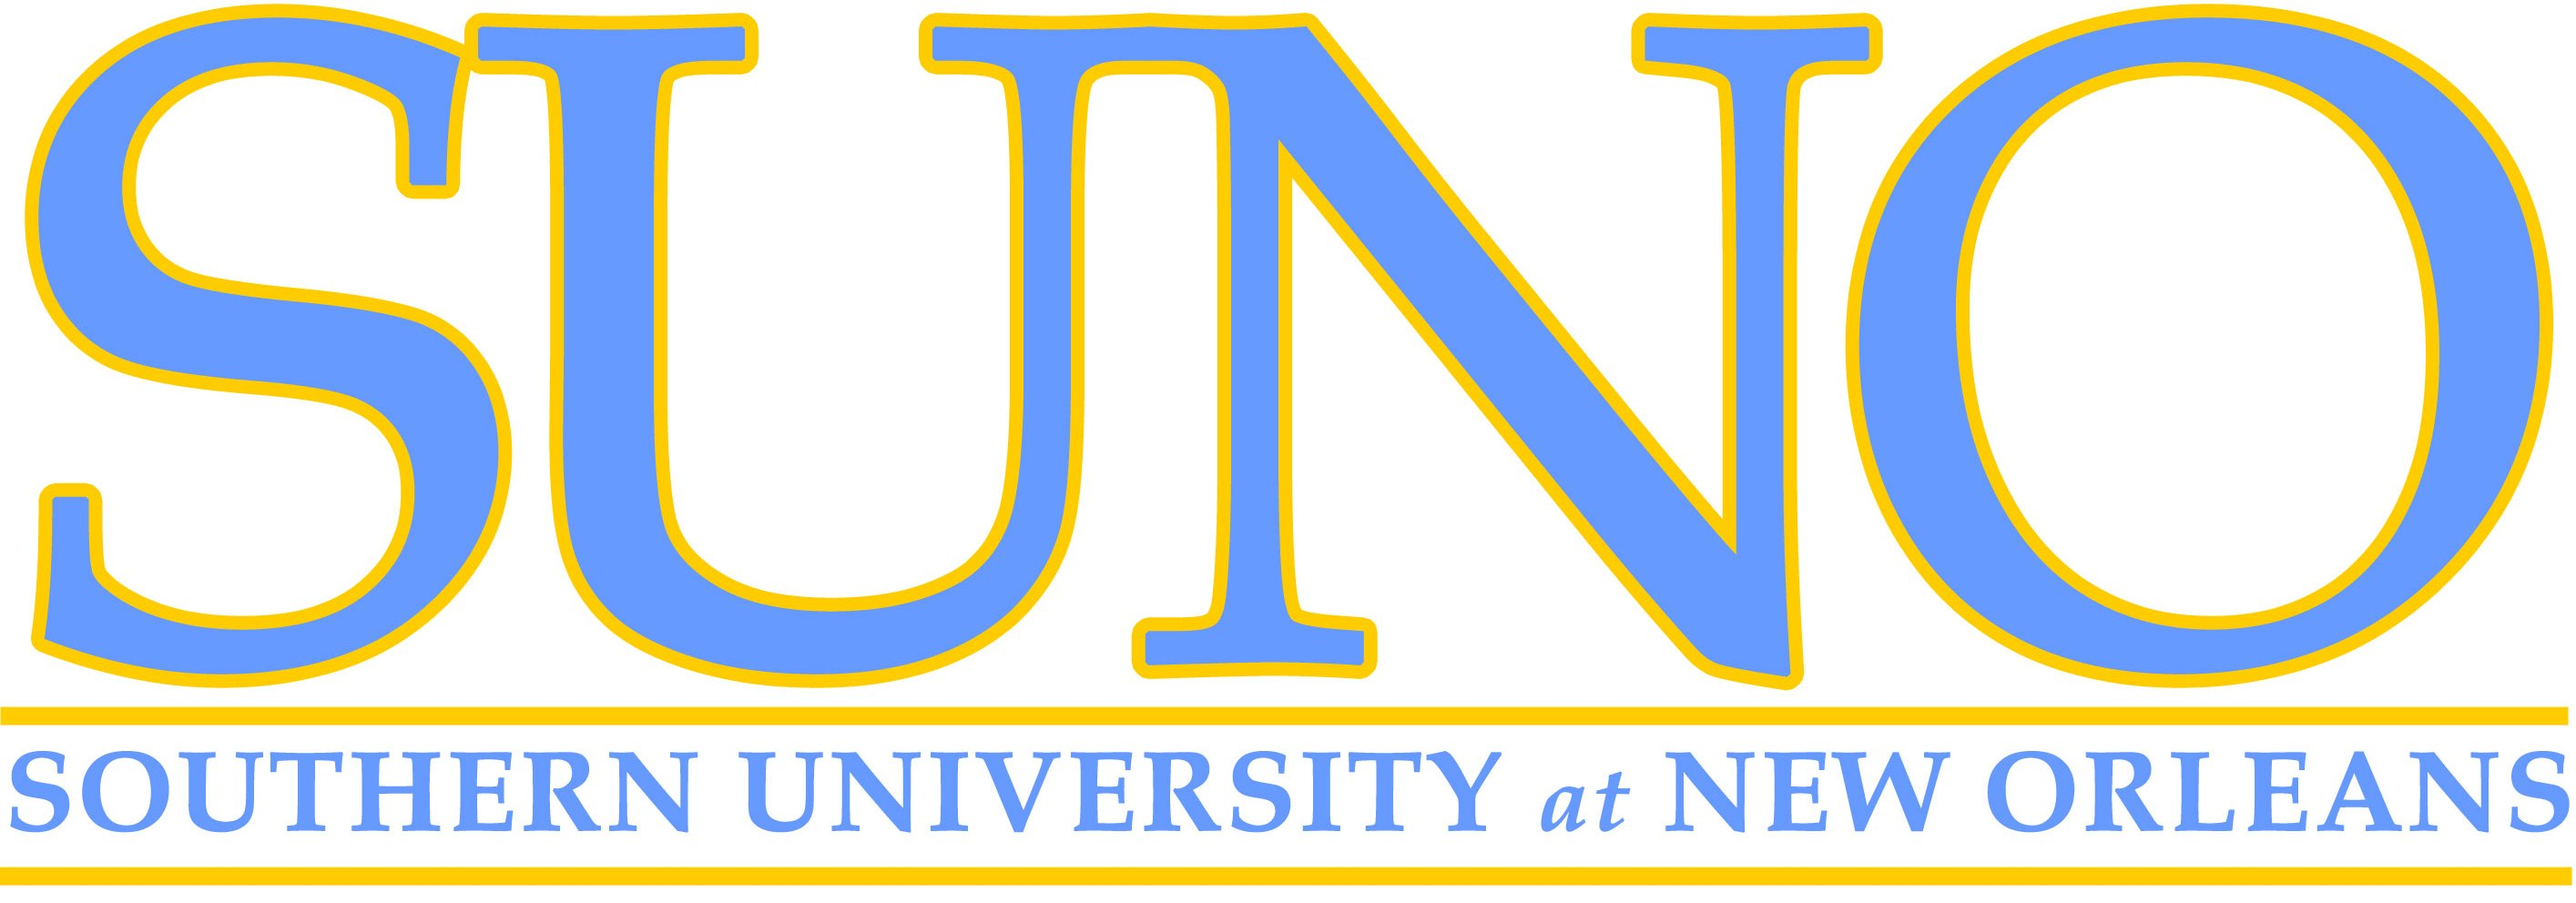 Description southern university new orleans logo picture